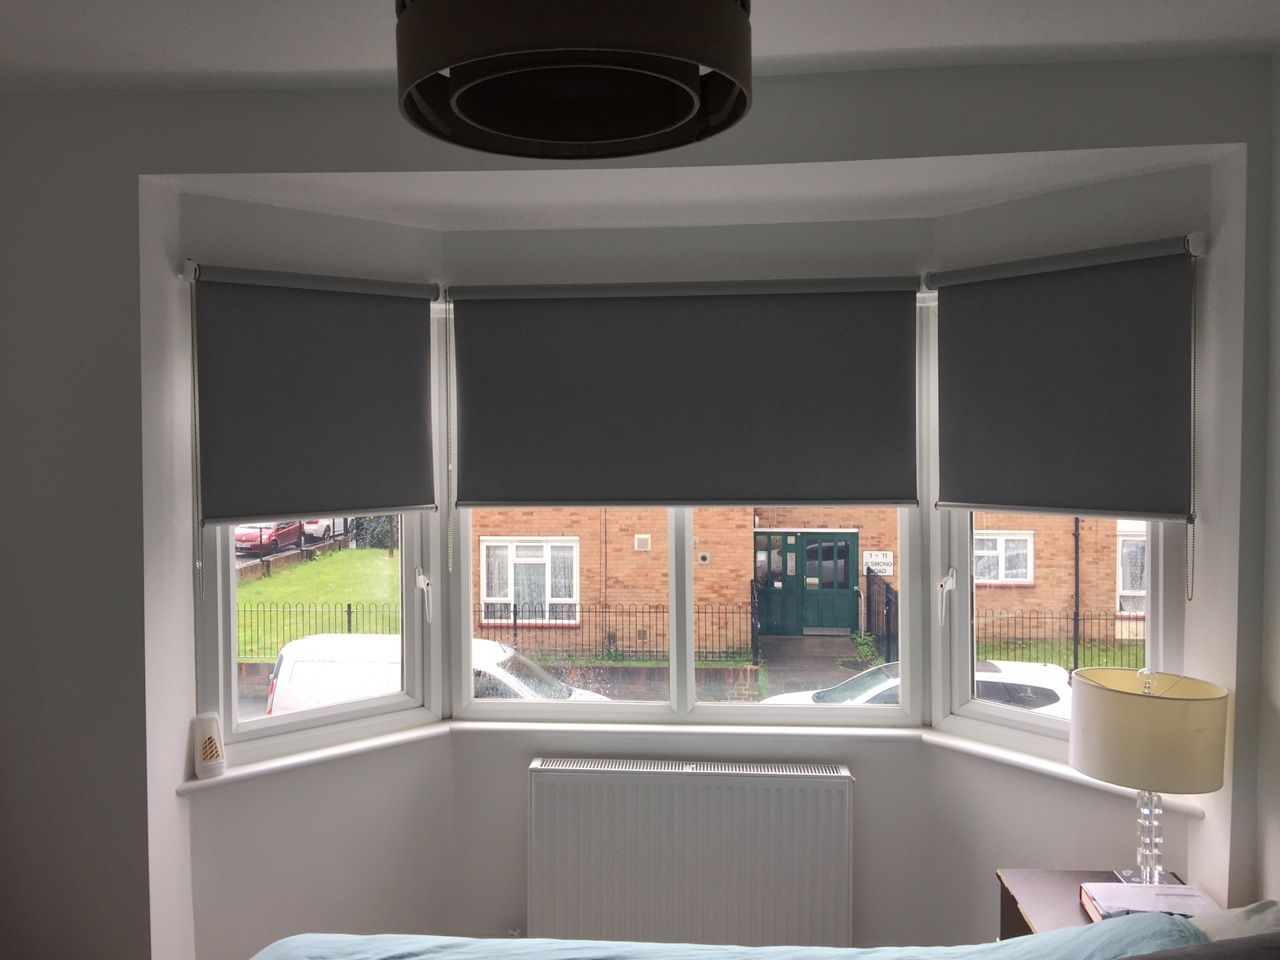 Bay window roller blinds - Made To Measure Blackout Roller Blinds Installed For A Bedroom Bay Window In Croydon Http